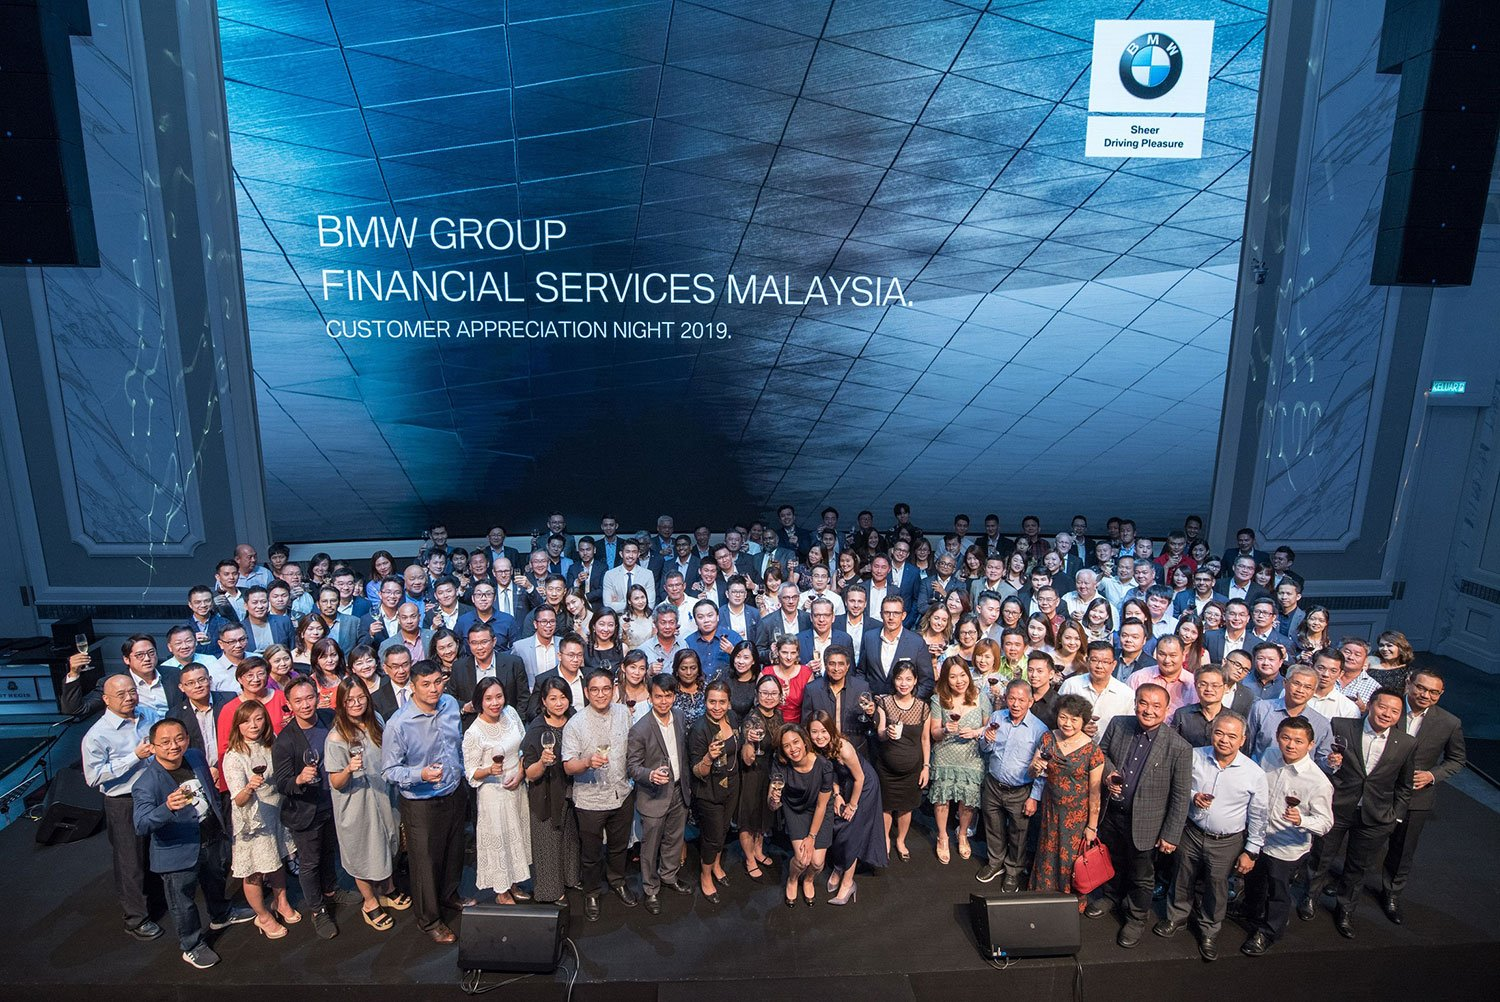 BMW Group Financial Services Malaysia Hosts Appreciation Night of Joy and Unity to Celebrate Corporate Customers.